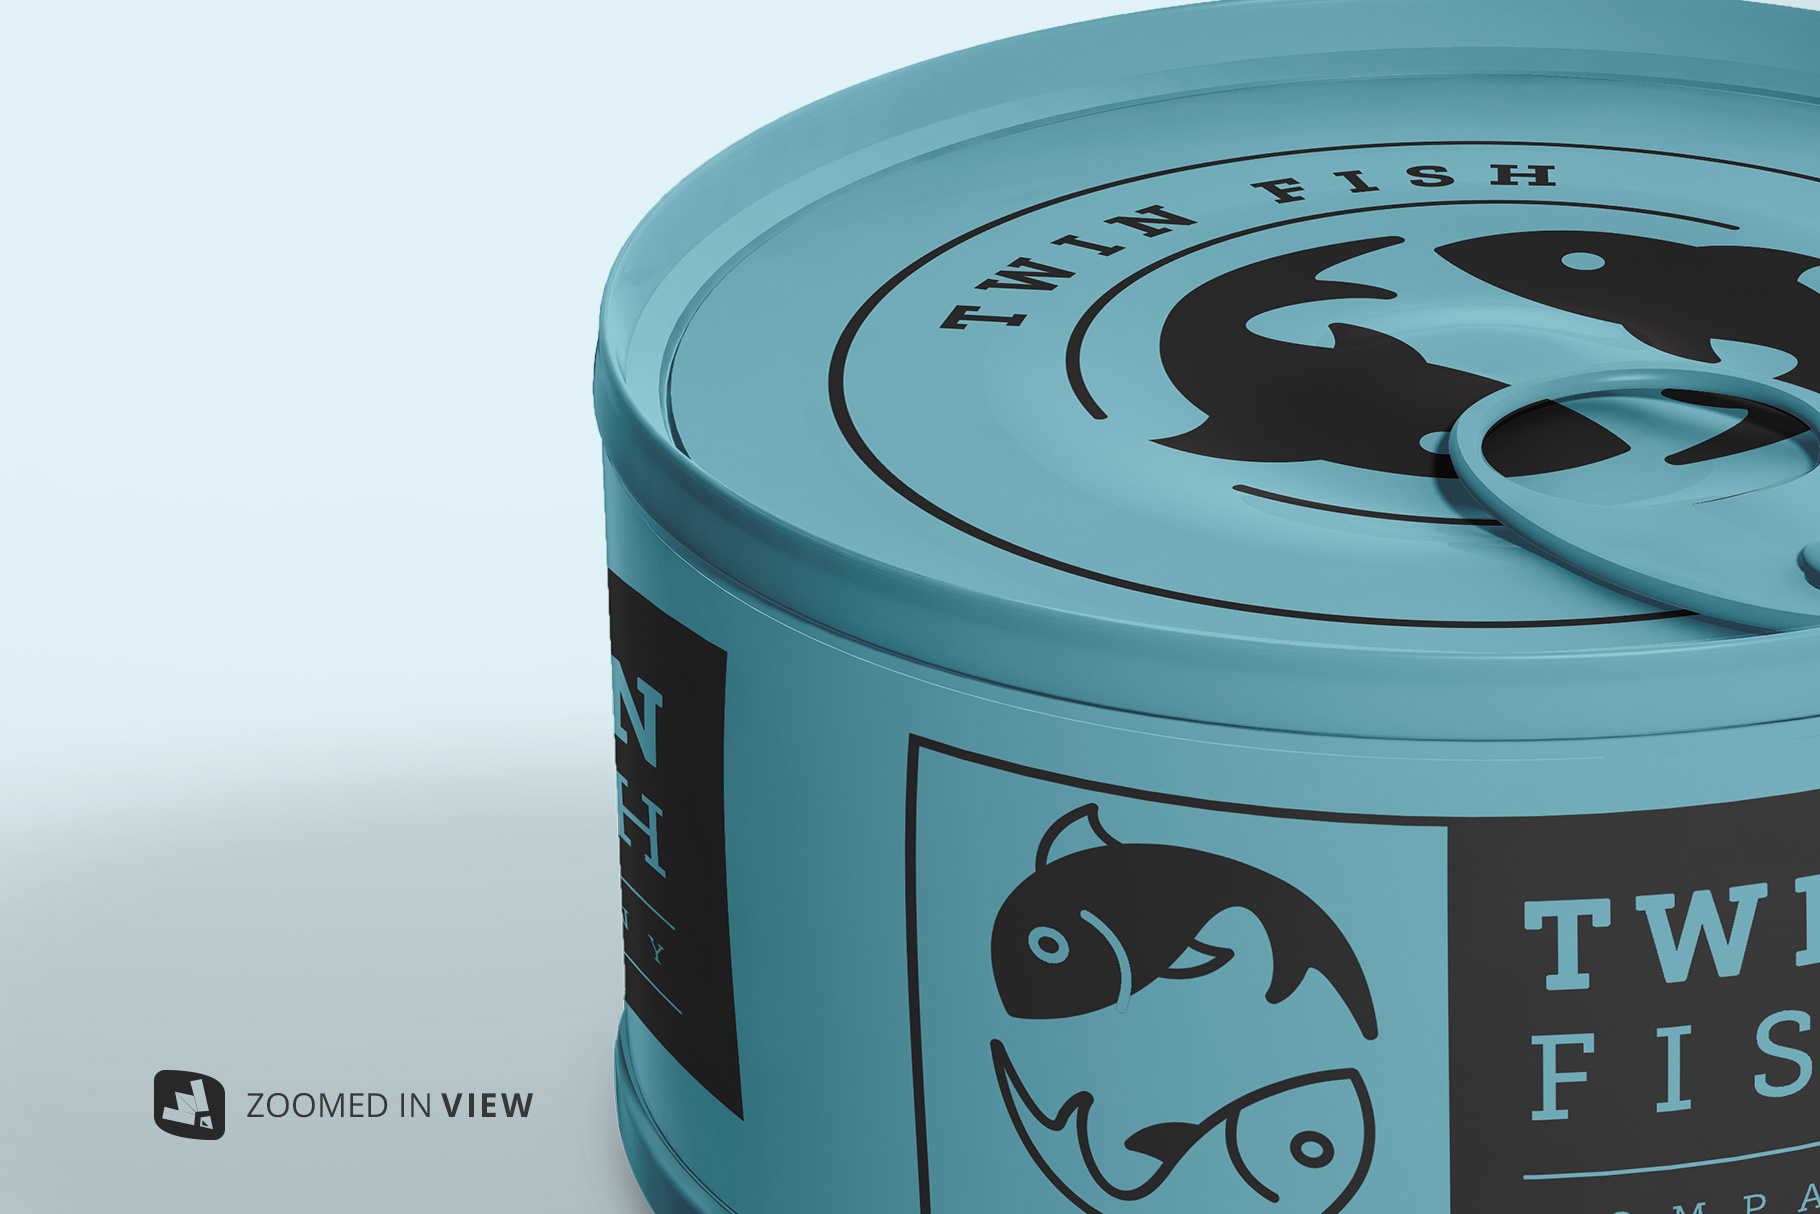 zoomed in image of the circular canned food packaging mockup